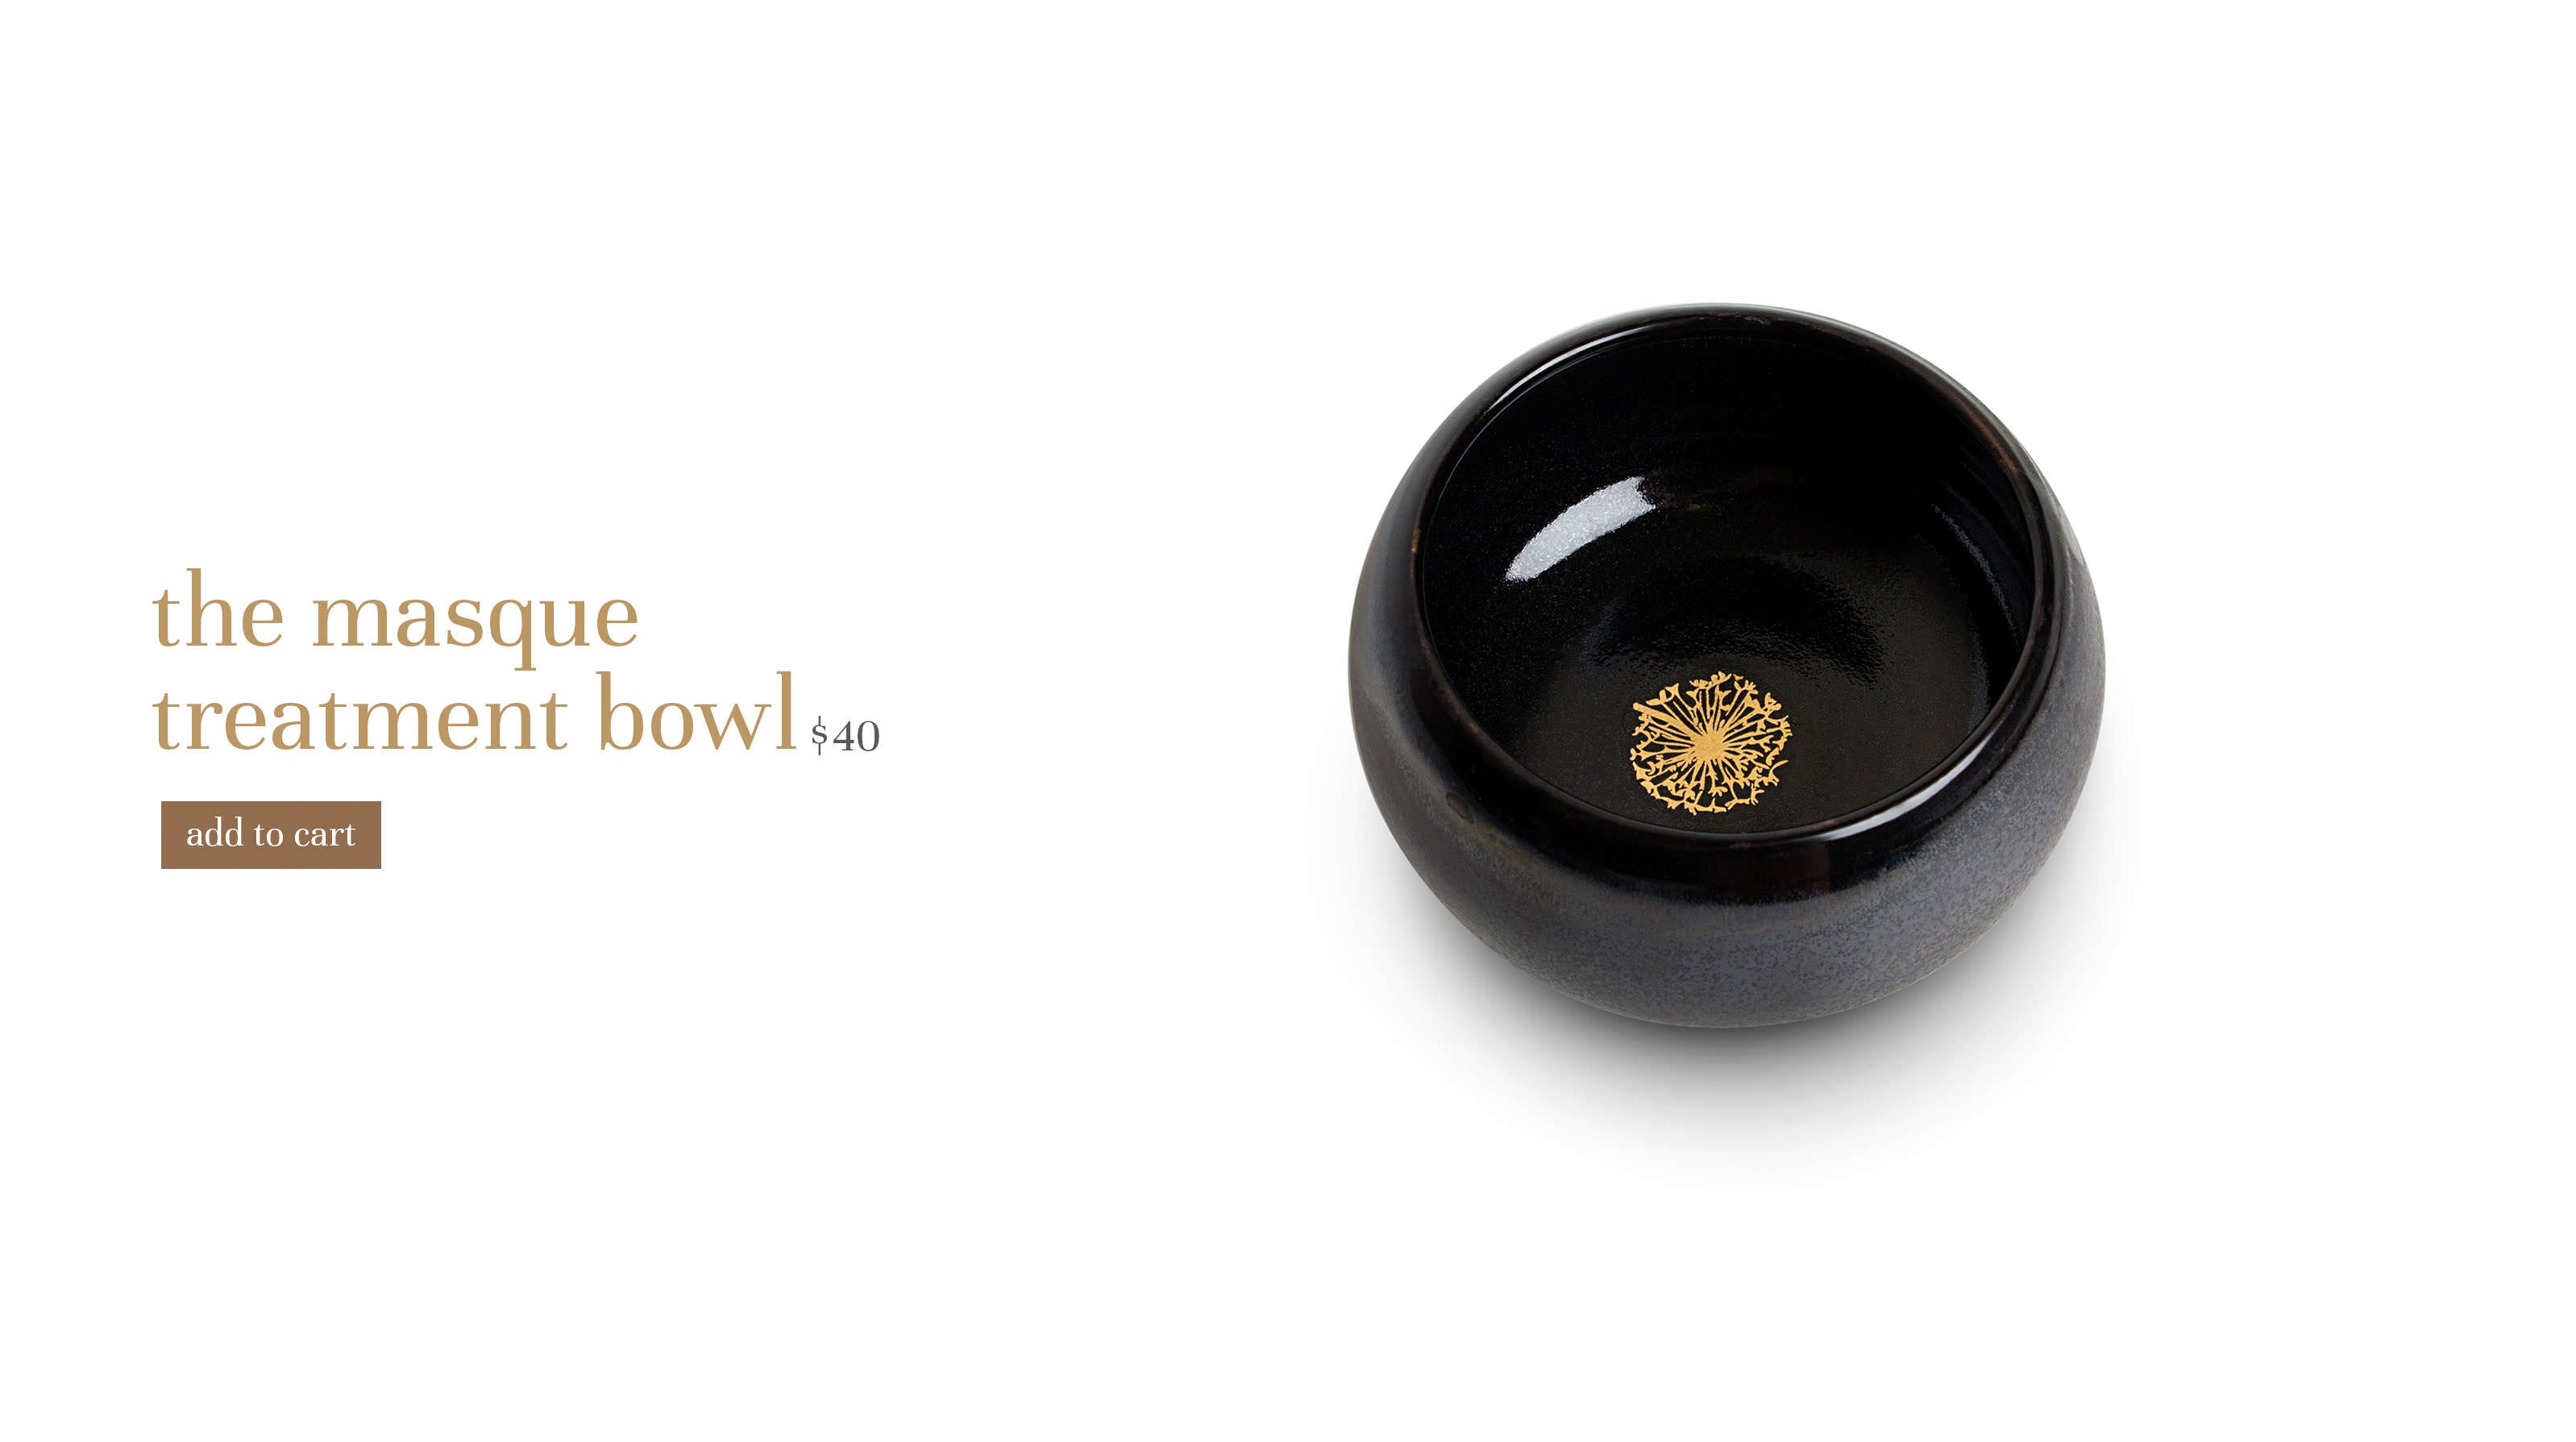 the masque treatment bowl $32